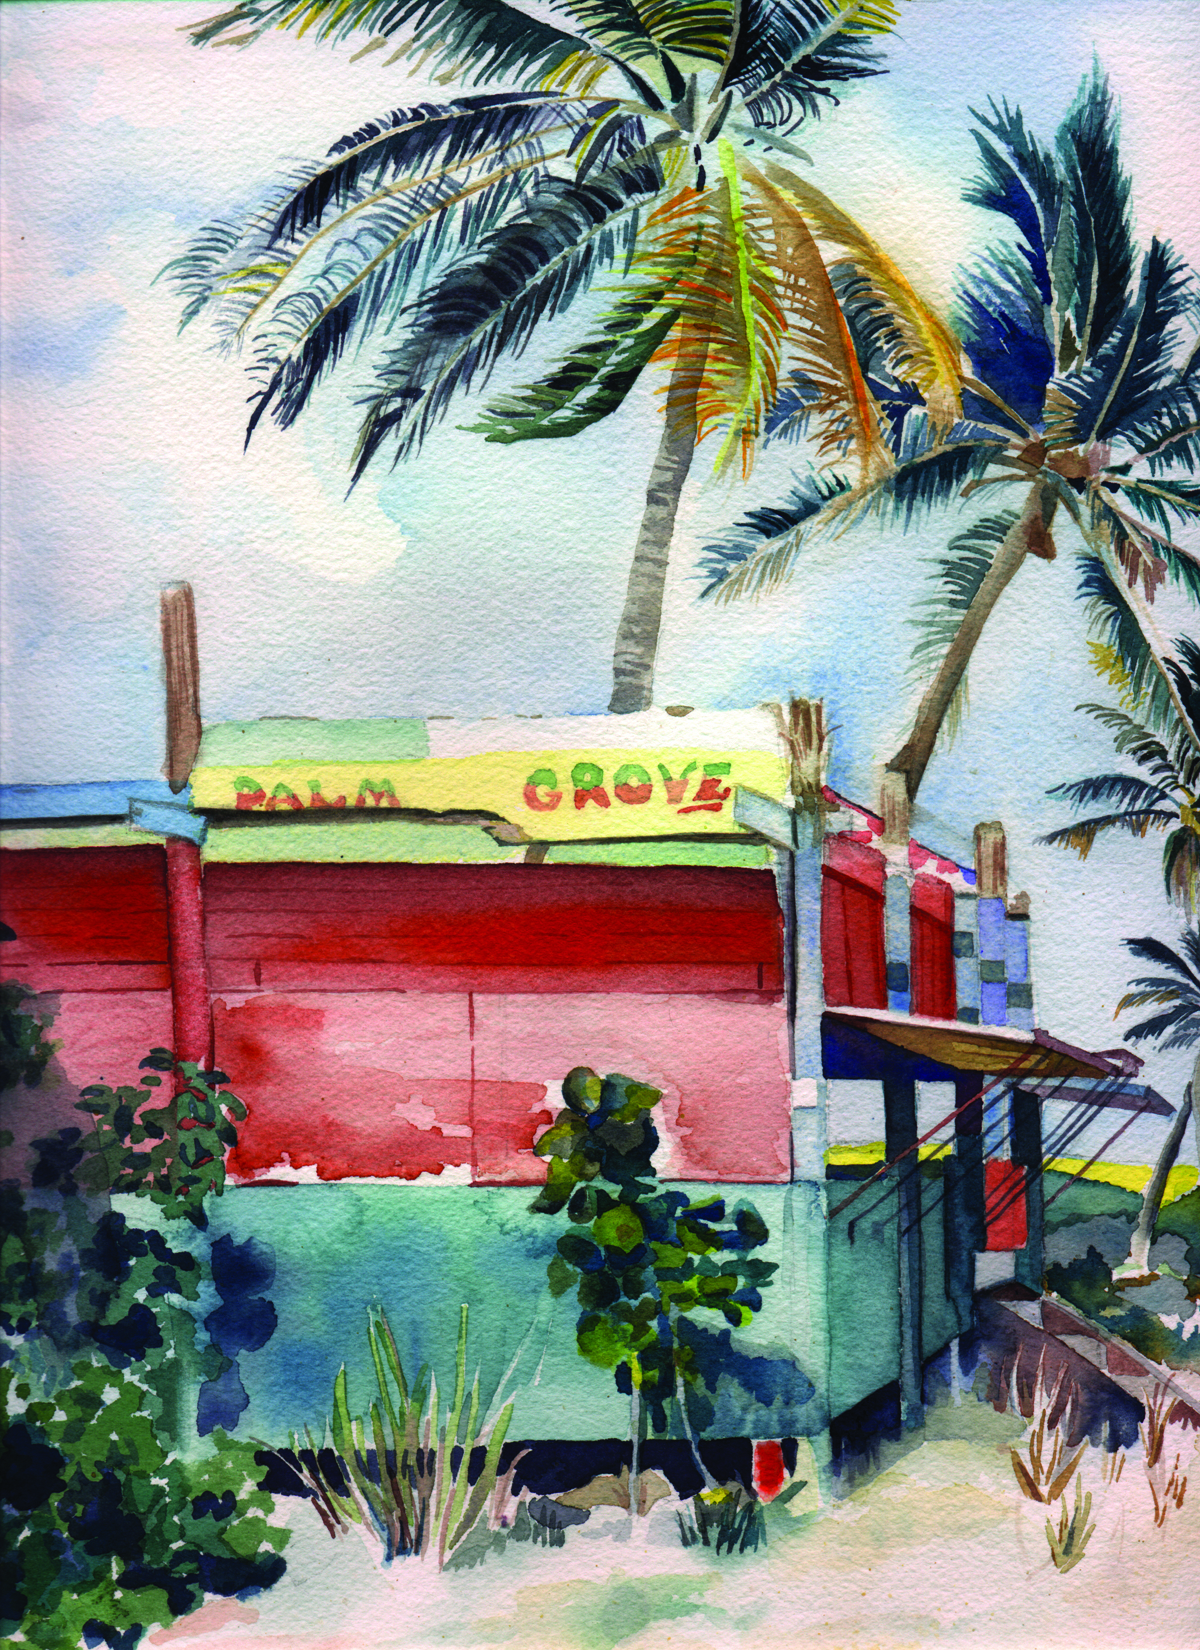 Palm Grove by Karen Beach